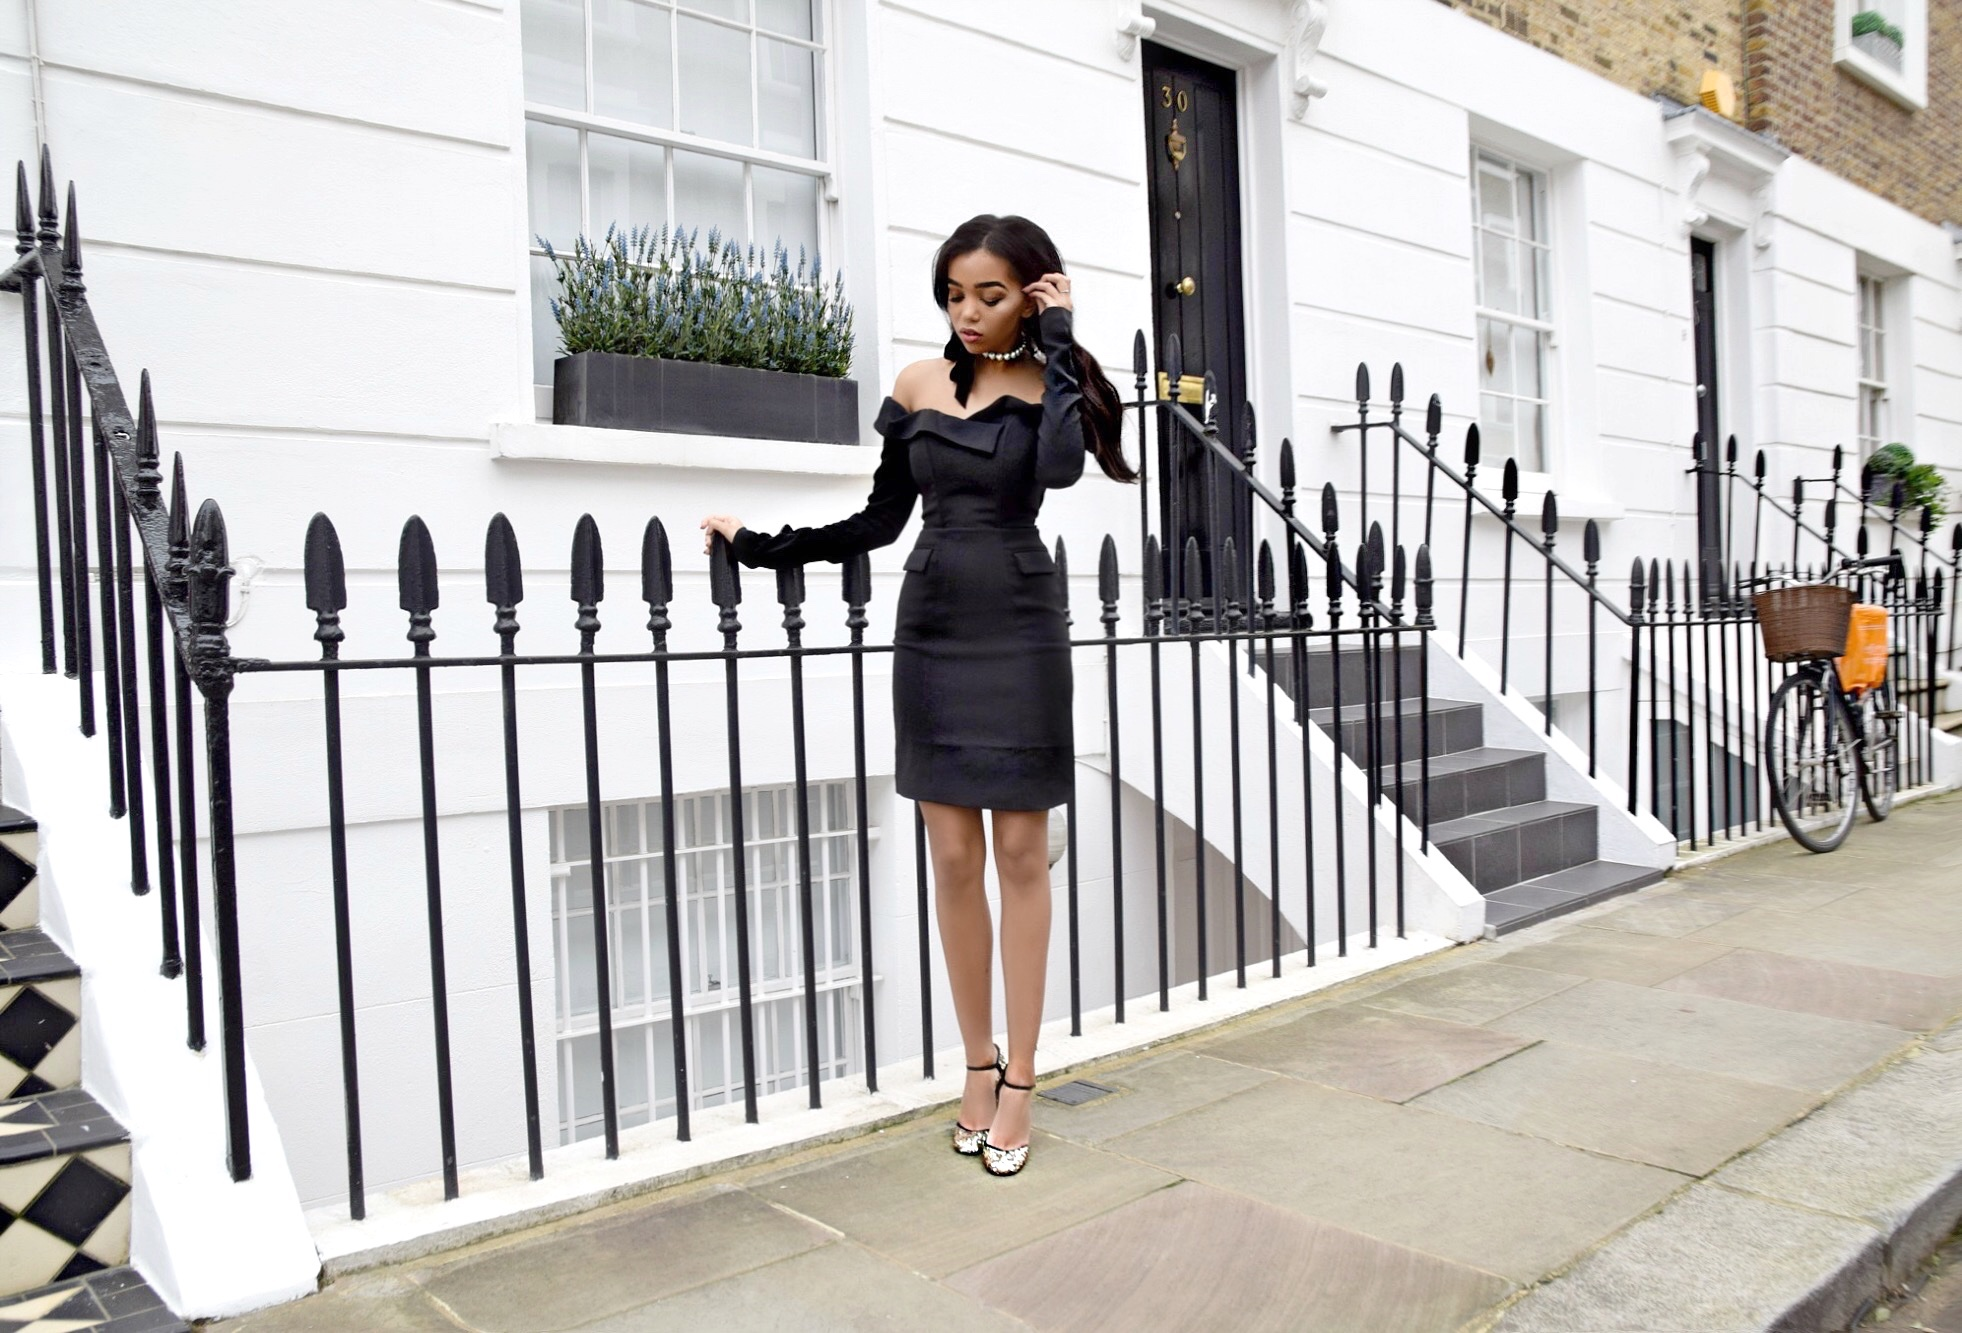 Party Ready with Nylon Shop // Lavish Alice Off The Shoulder Dress // Chelsea London England // London England Travel Diary // Gold Sequin Jimmy Choo Mary Janes // Chanel Classic Flap Bag // Lulu Frost Pearl and Velvet Bow Choker // Los Angeles Fashion Blogger Daphne Blunt: To Style, With Love